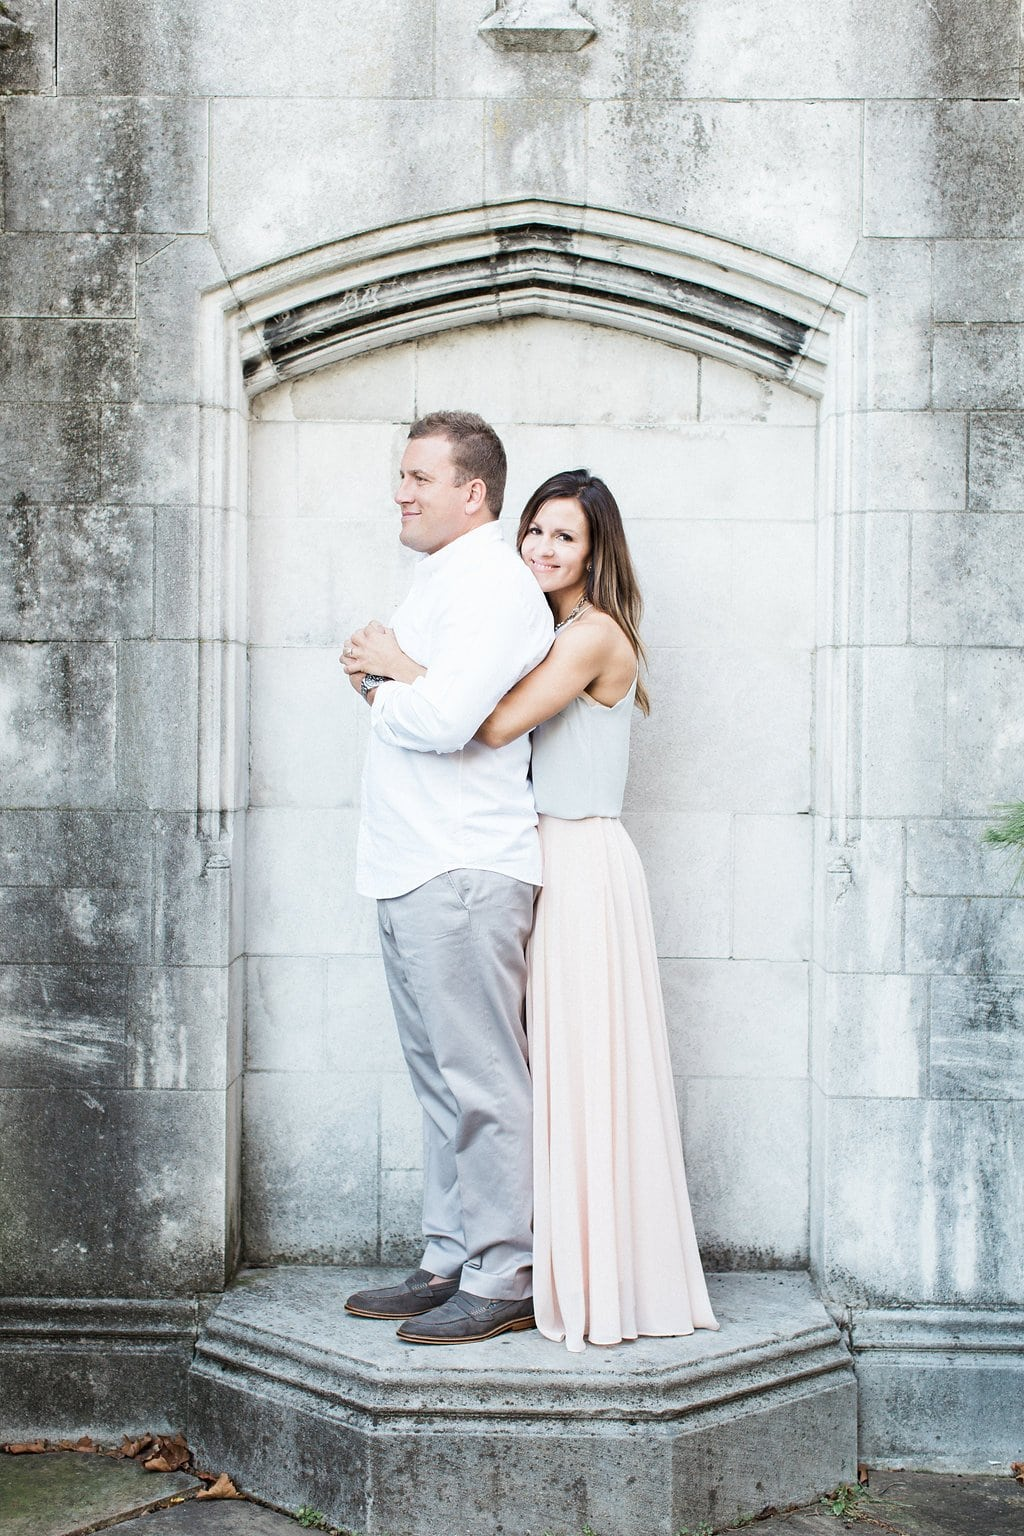 Bride cuddling up to her groom wrapping her arms around him while standing next to stone wall